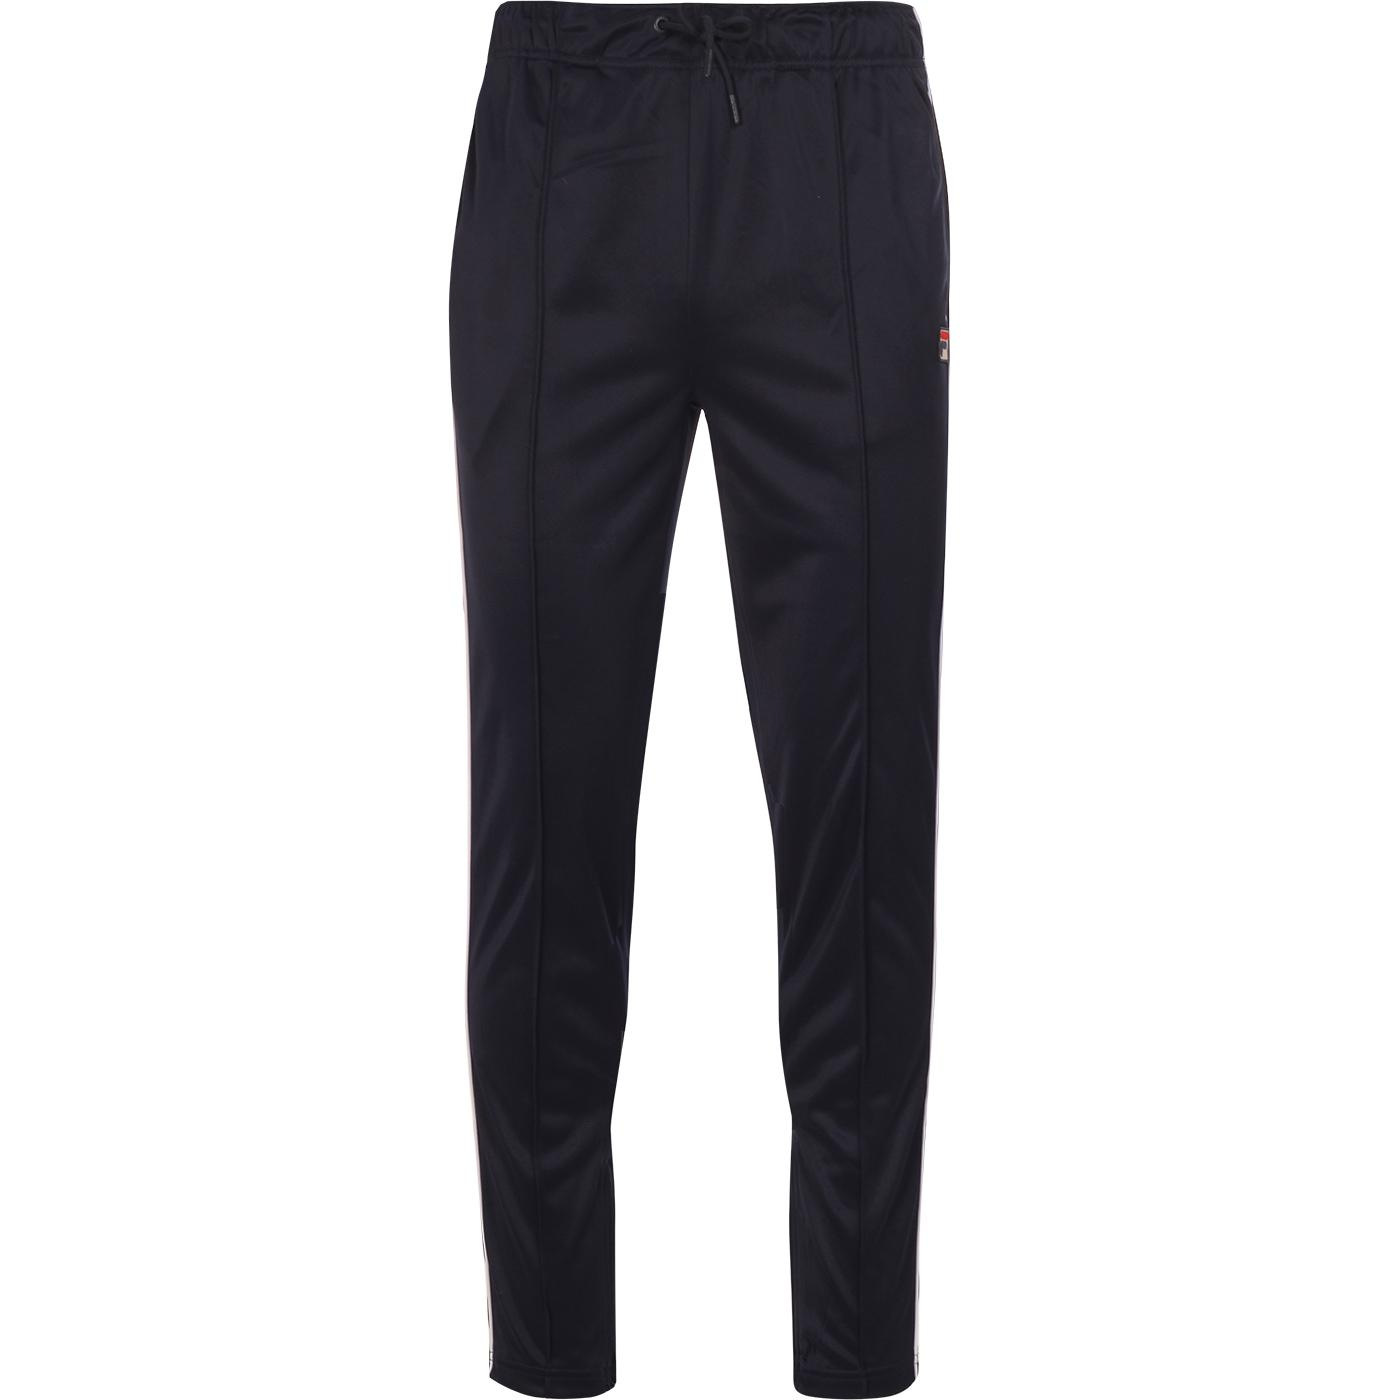 Terry FILA VINTAGE Retro 80s Piped Track Pants (P)